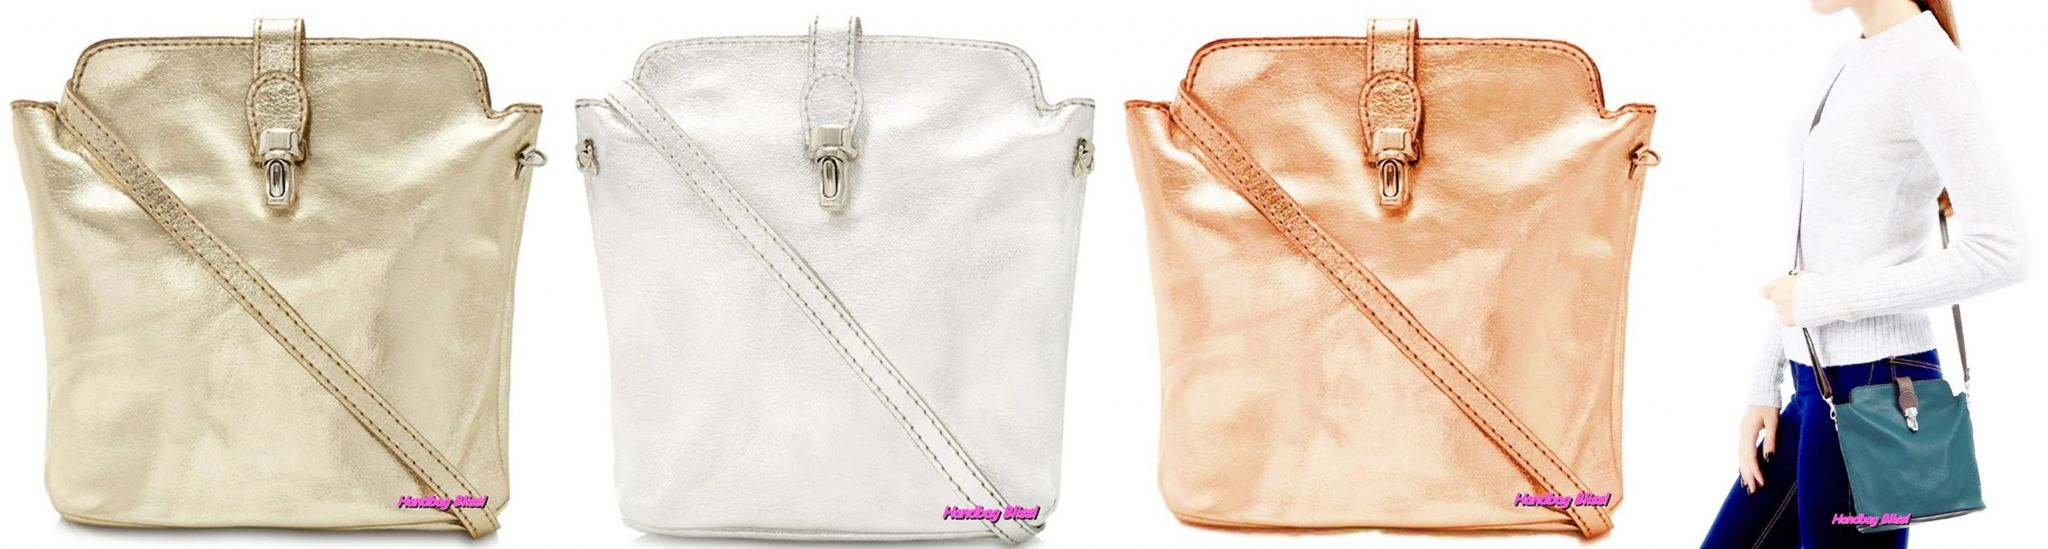 Handbag Bliss Beautiful Metallic Italian Soft Leather Small Cross Body or Shoulder  Bag 9a6fe9d9f0299